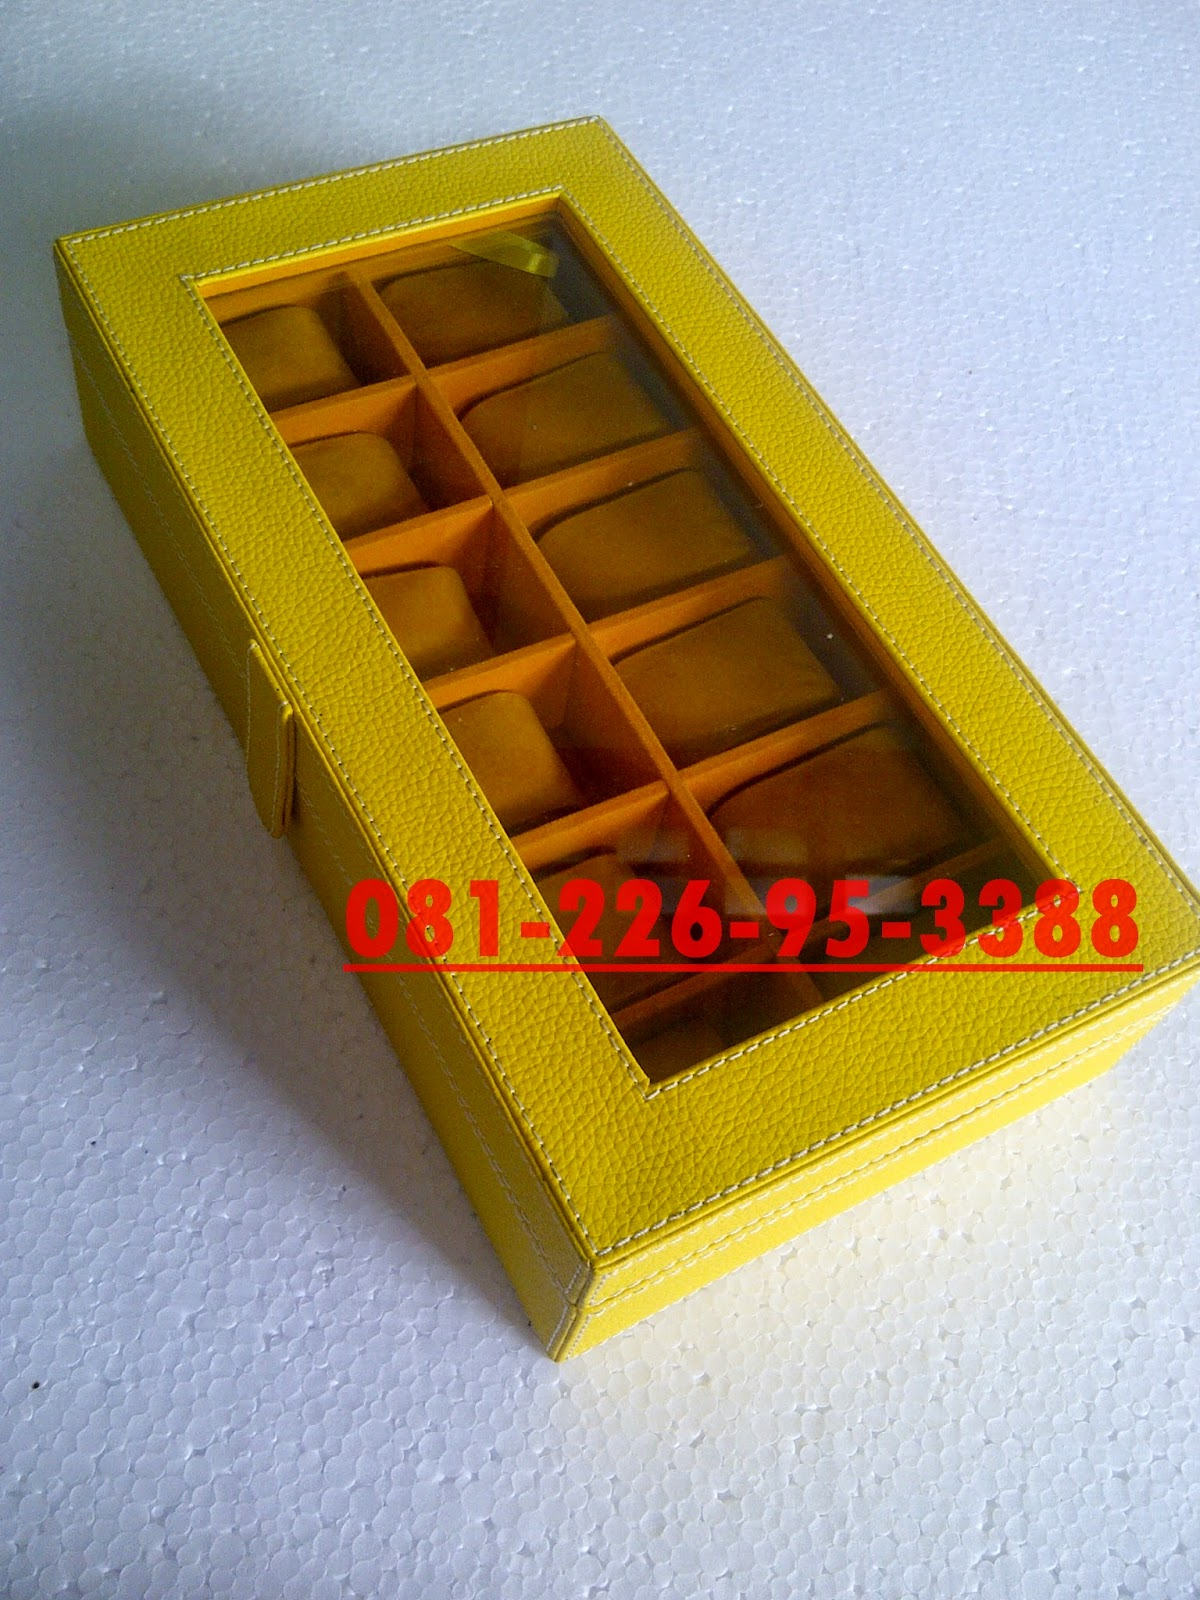 Box Jam Tangan, Watch Box, Kotak jam Tangan